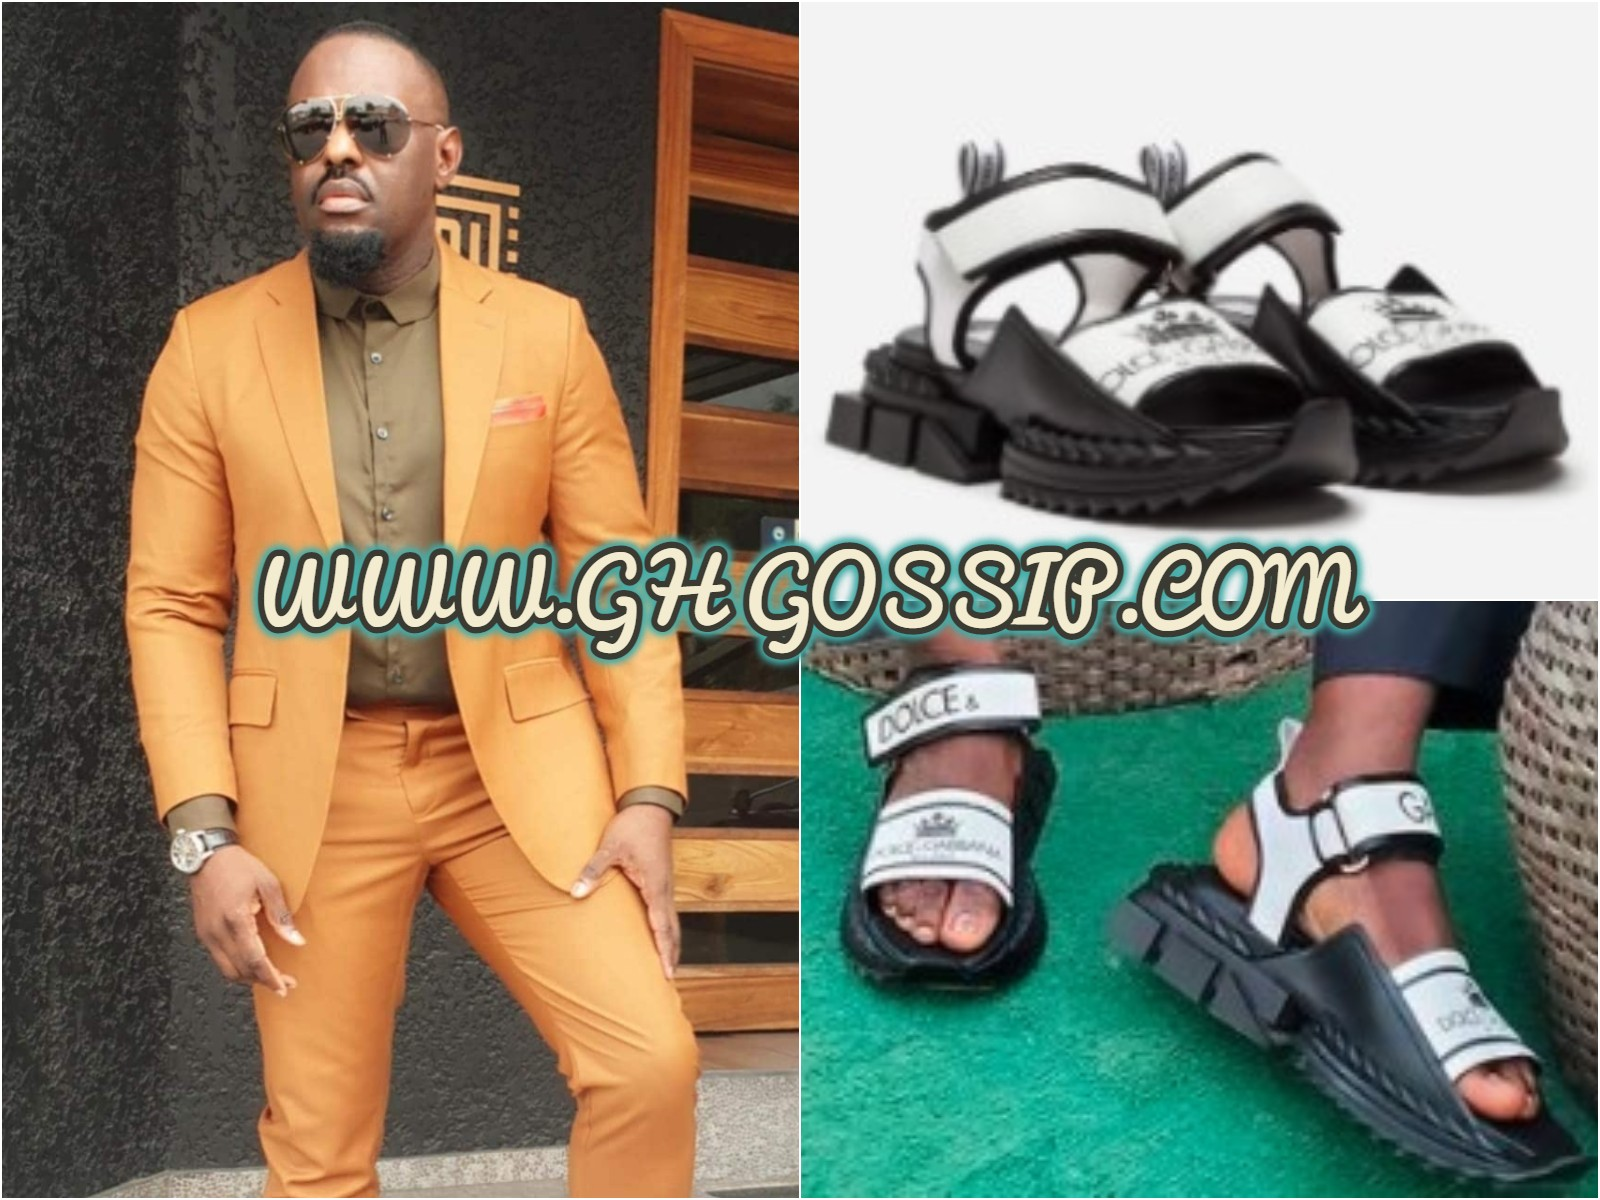 See The Cost Of The D&G Sandal Nollywood Actor, Jim Iyke Wore Today That Got People Talking